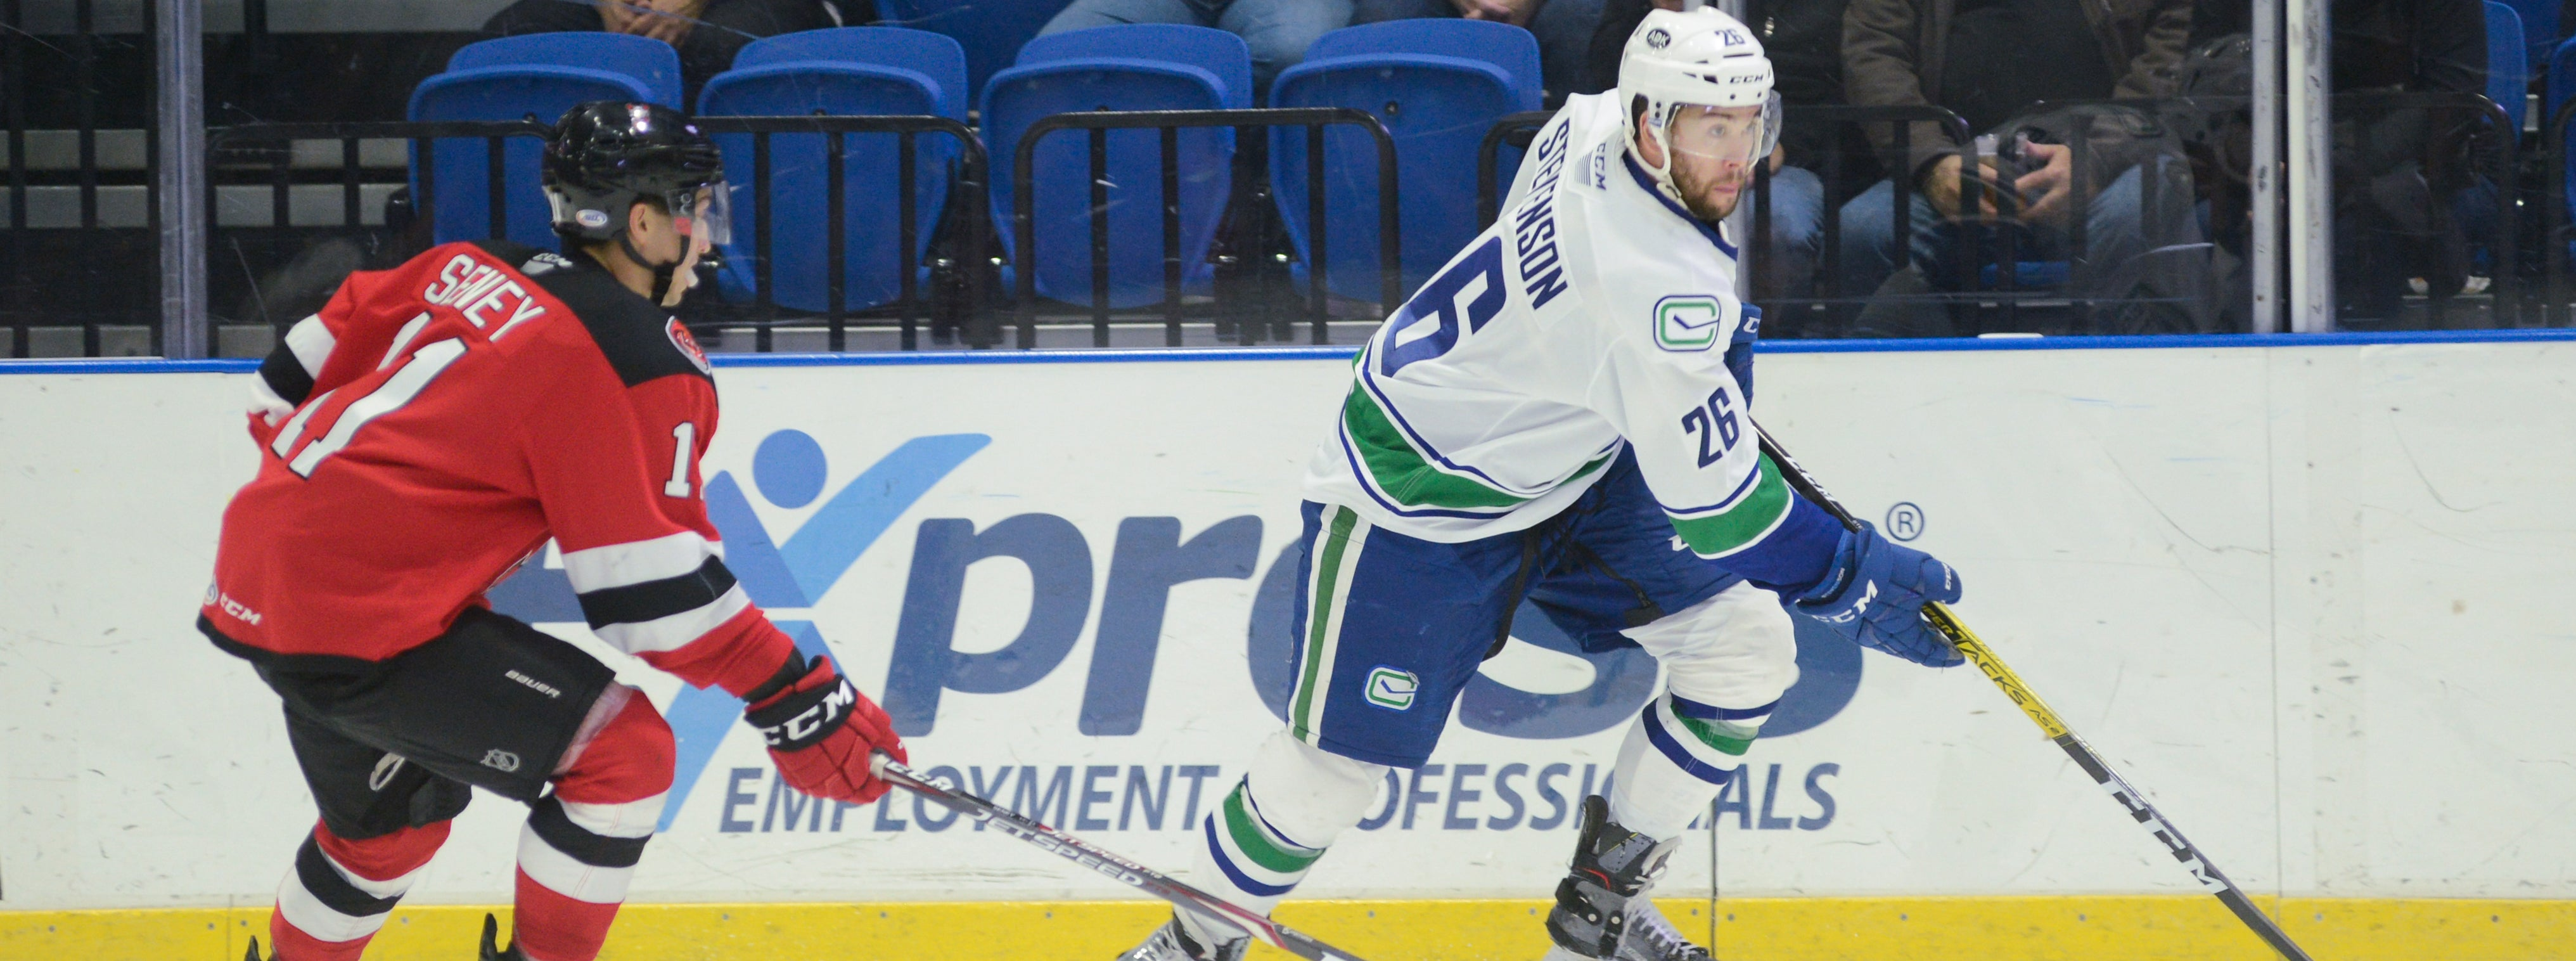 COMETS TRAVEL TO BINGHAMTON TO FACE DEVILS